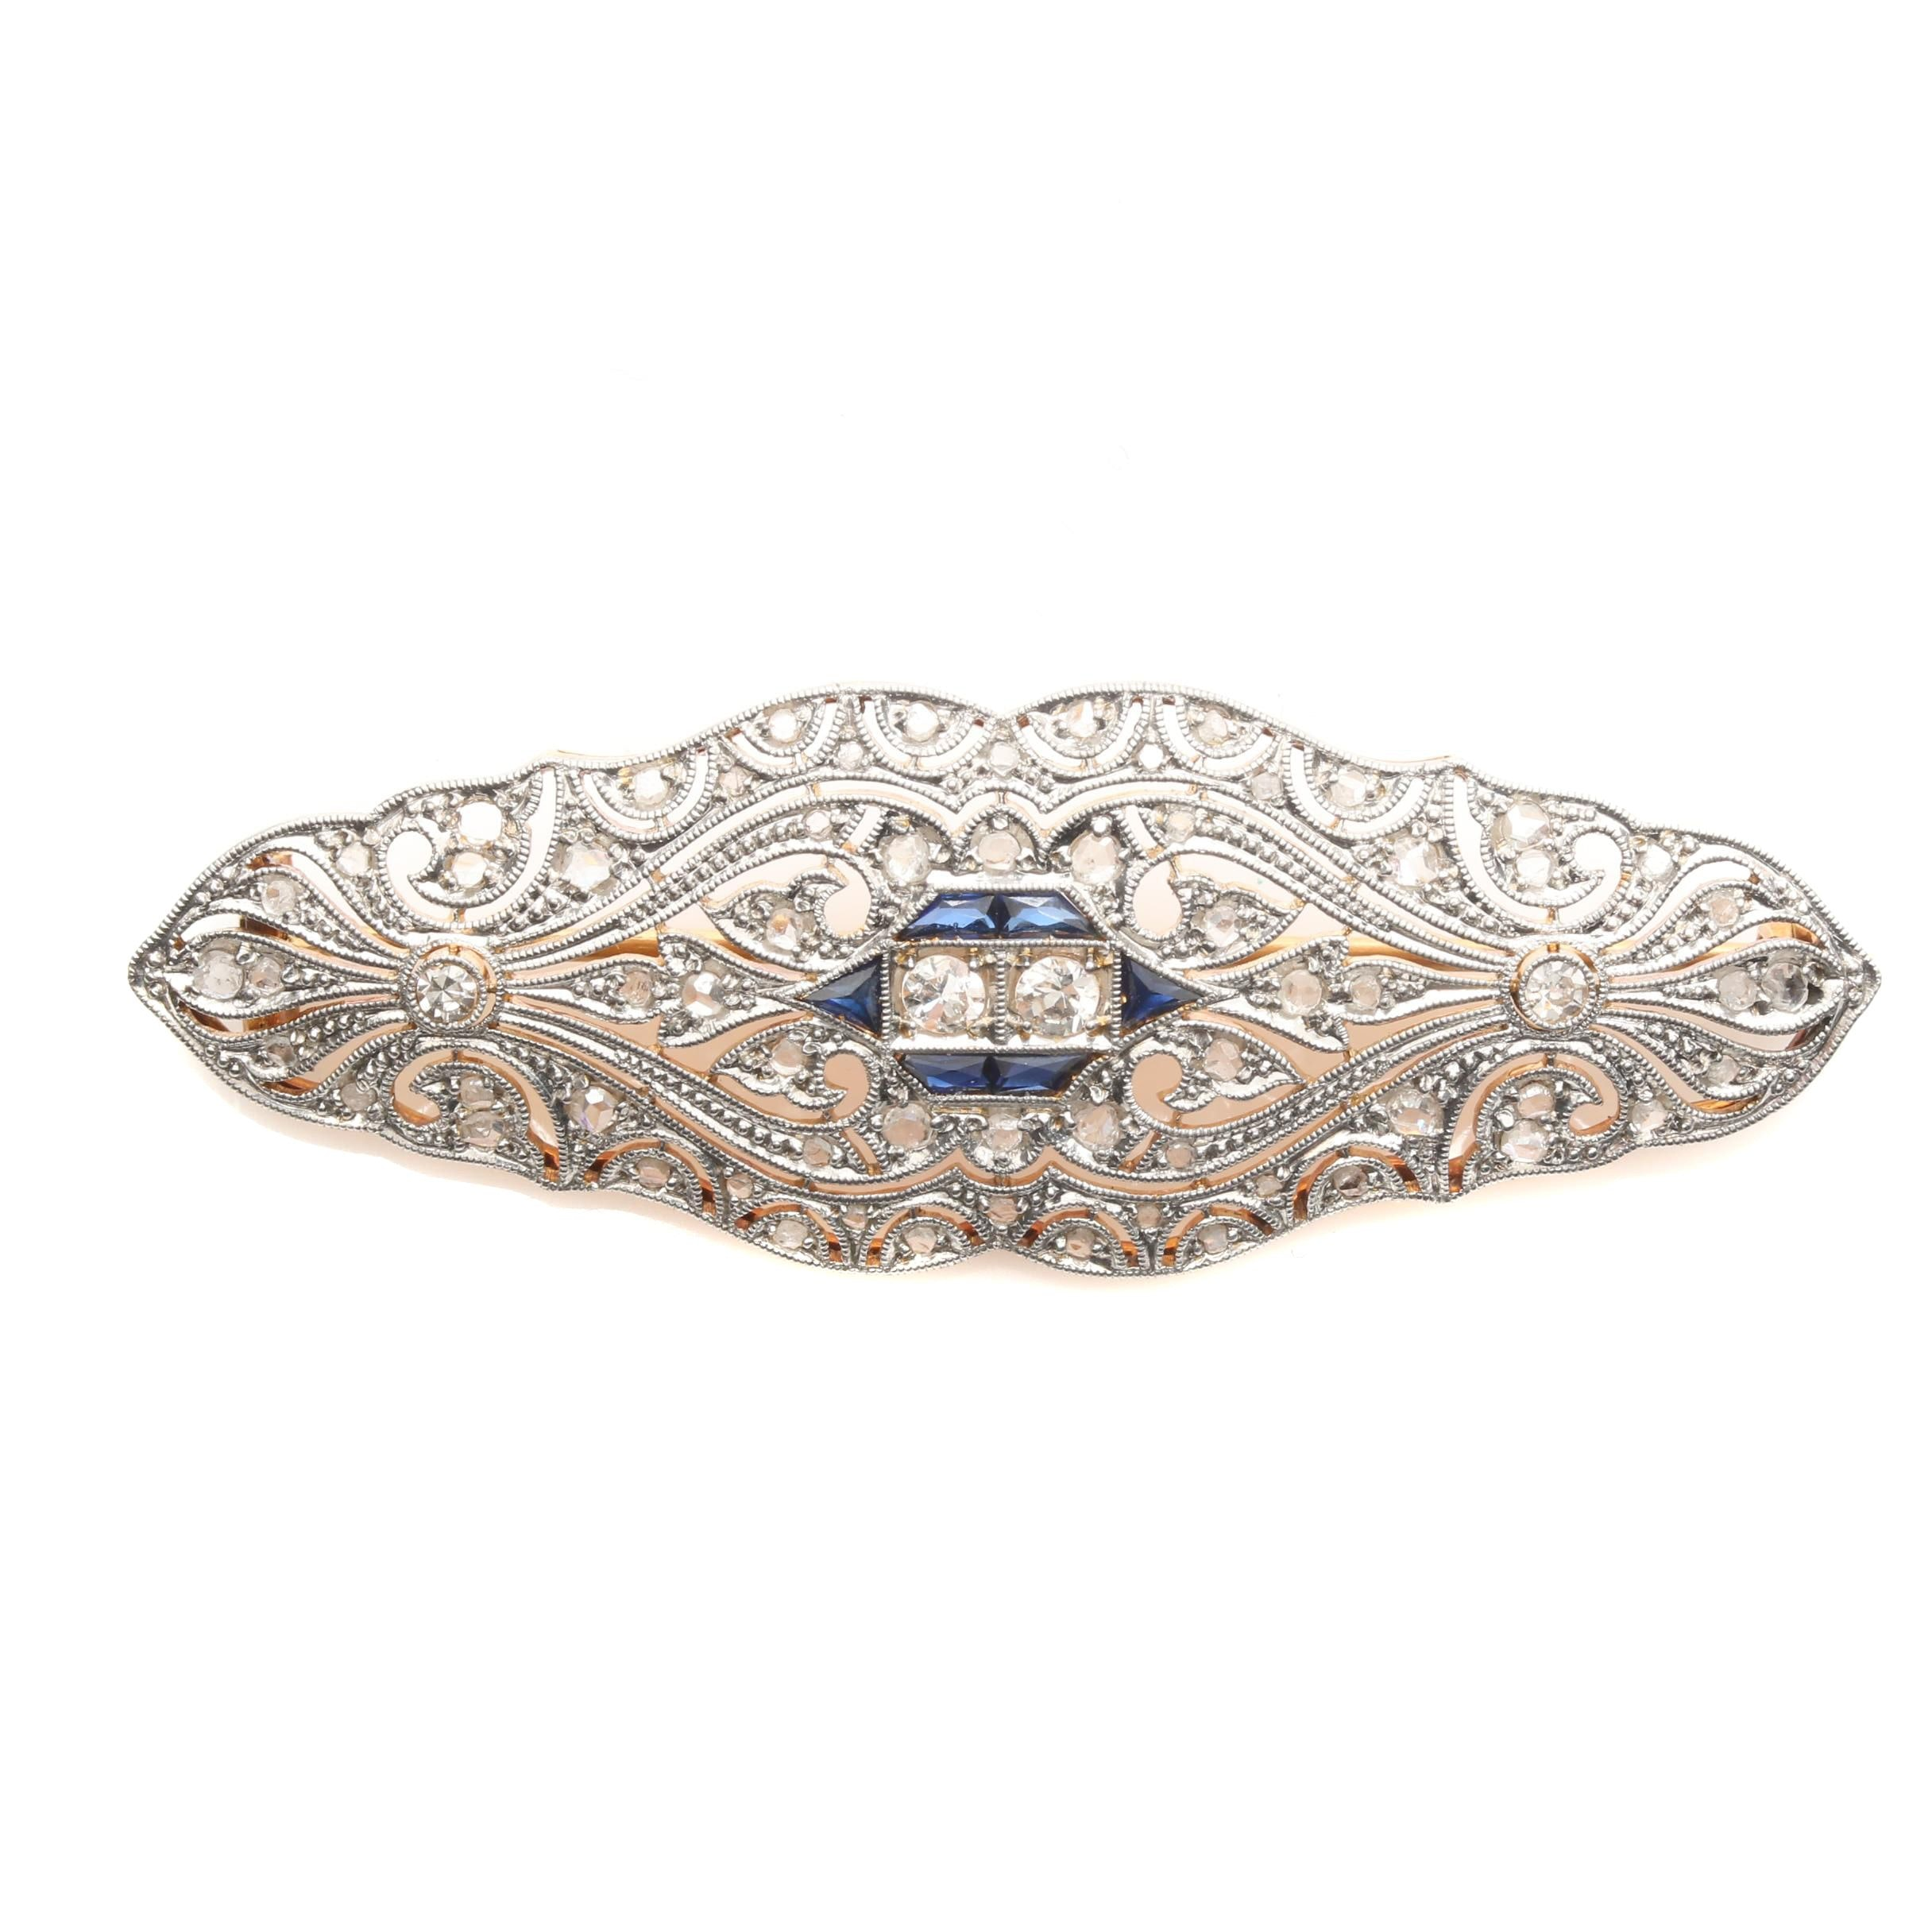 Early Art Deco 18K White Gold and Platinum Diamond and Synthetic Sapphire Brooch